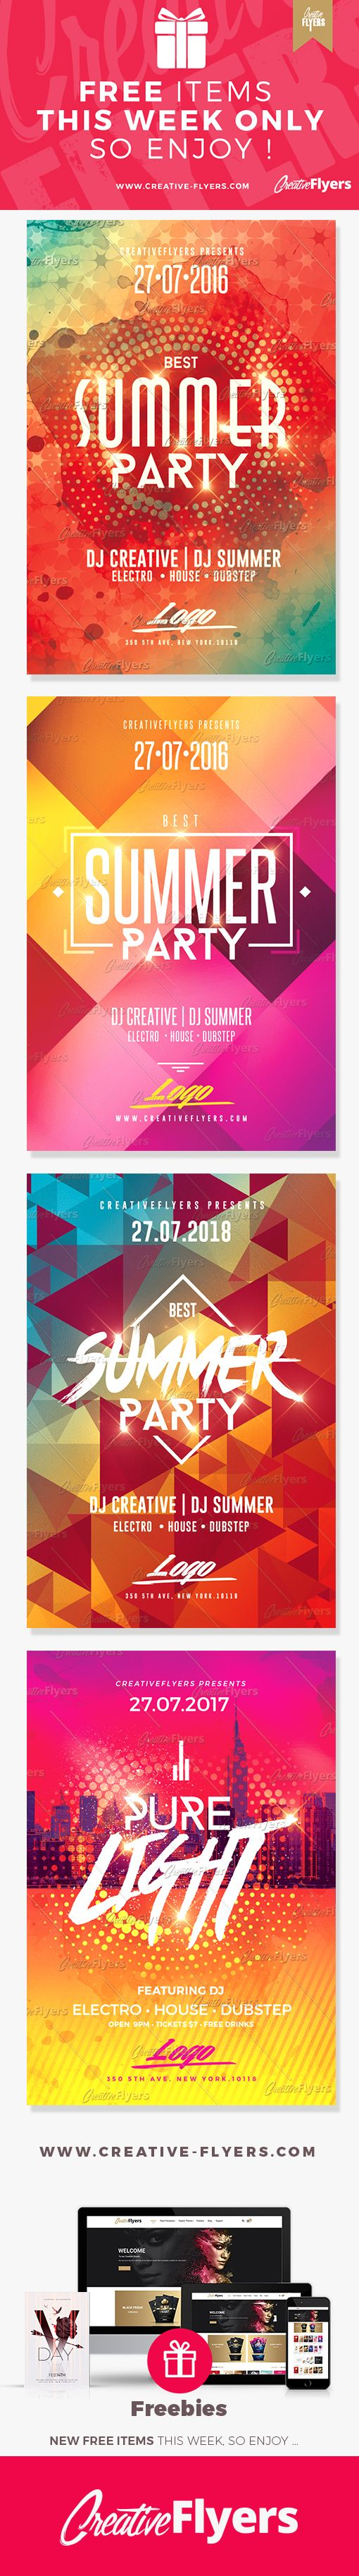 Free items this week only - Freebies Flyer Psd Templates ~ Creative Flyers #freebies #flyers #summer #templates #creativeflyers #free #freeflyers